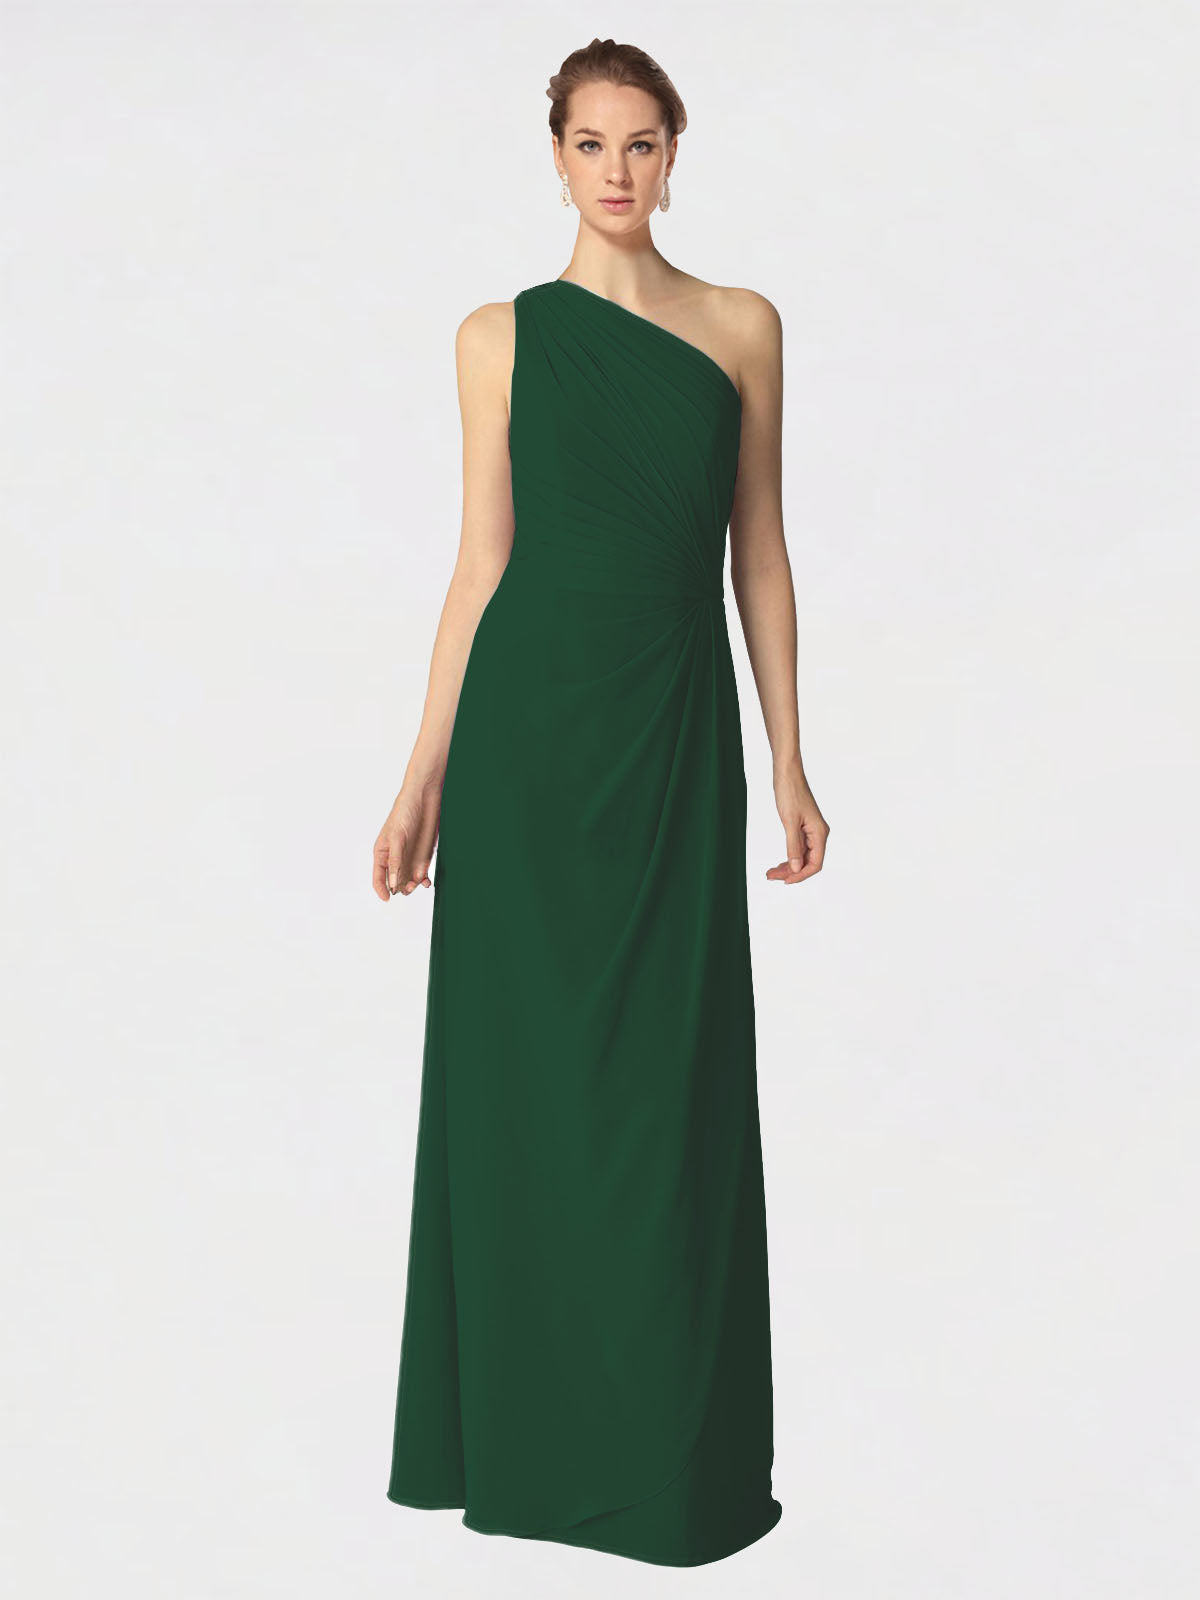 Long A-Line One Shoulder Sleeveless Dark Green Chiffon Bridesmaid Dress Aurora